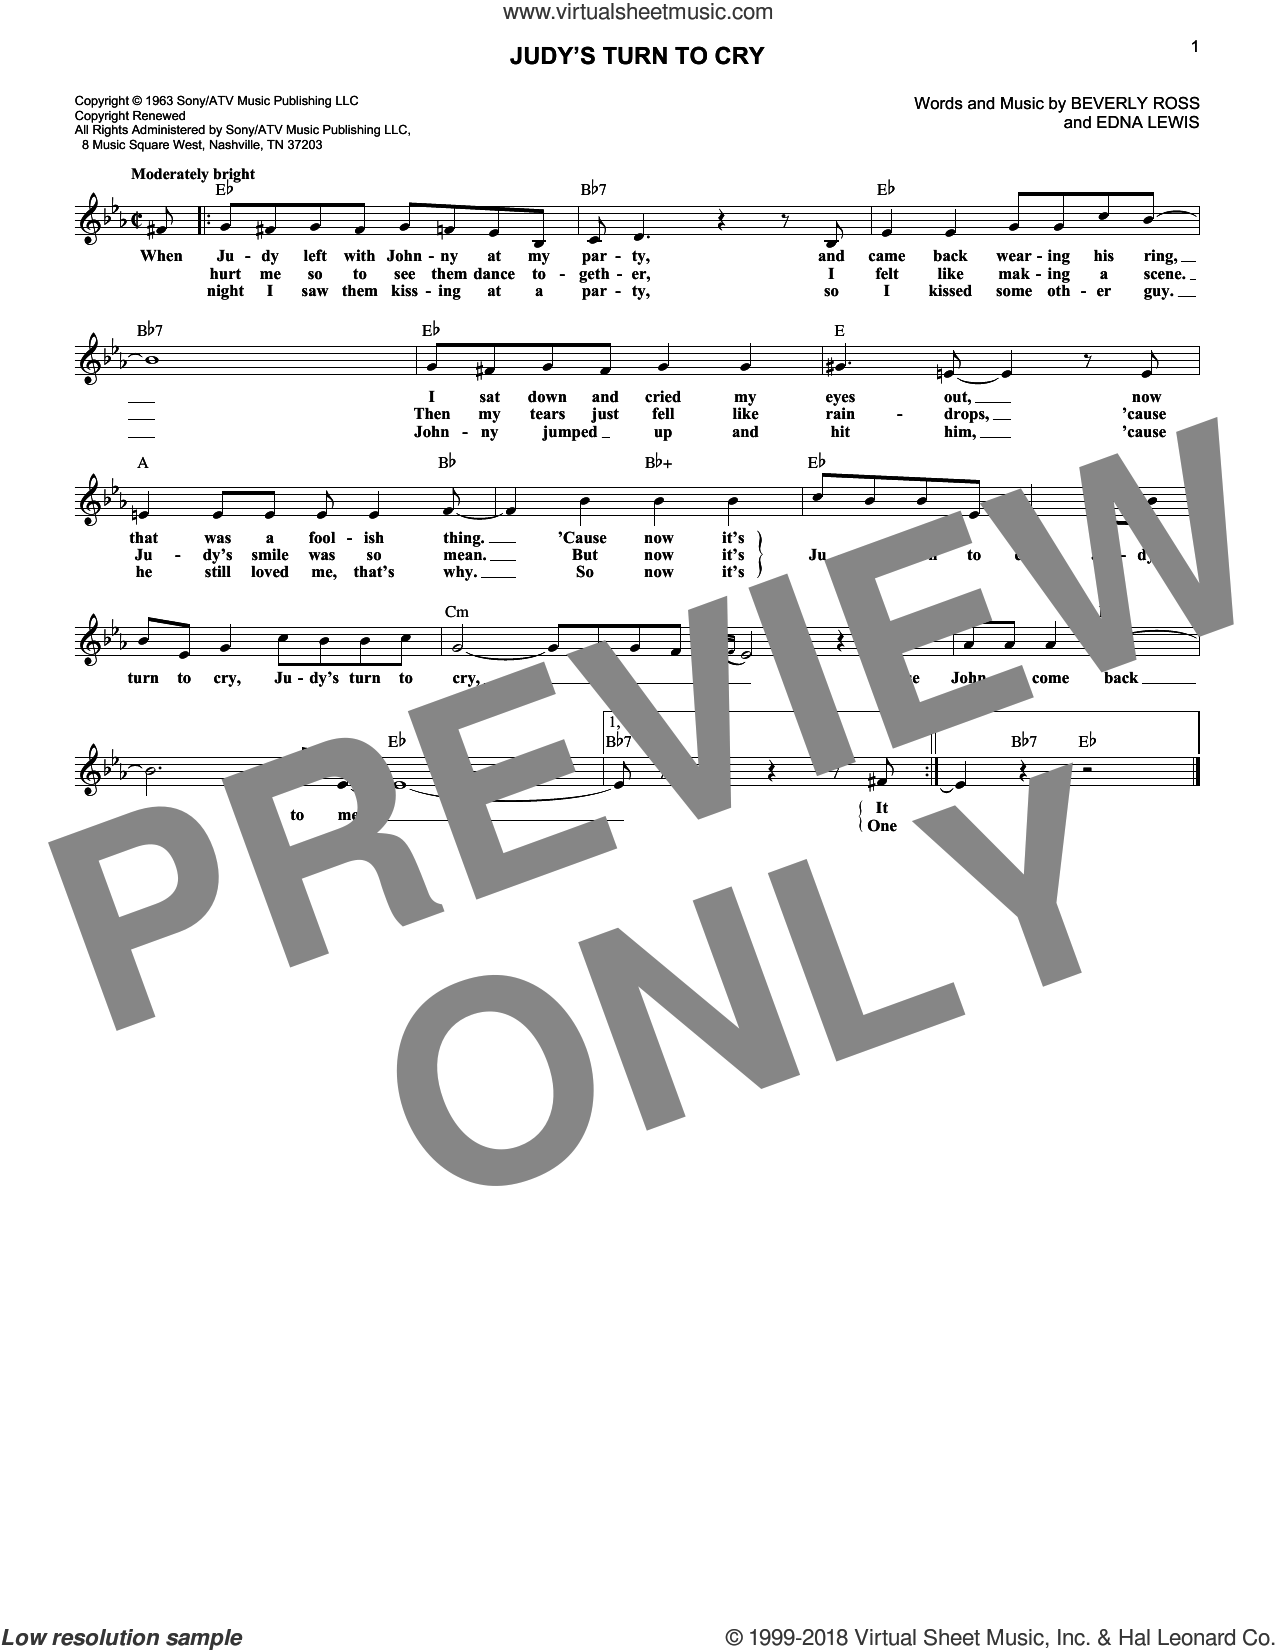 Judy's Turn To Cry sheet music for voice and other instruments (fake book) by Lesley Gore, Beverly Ross and Edna Lewis, intermediate skill level